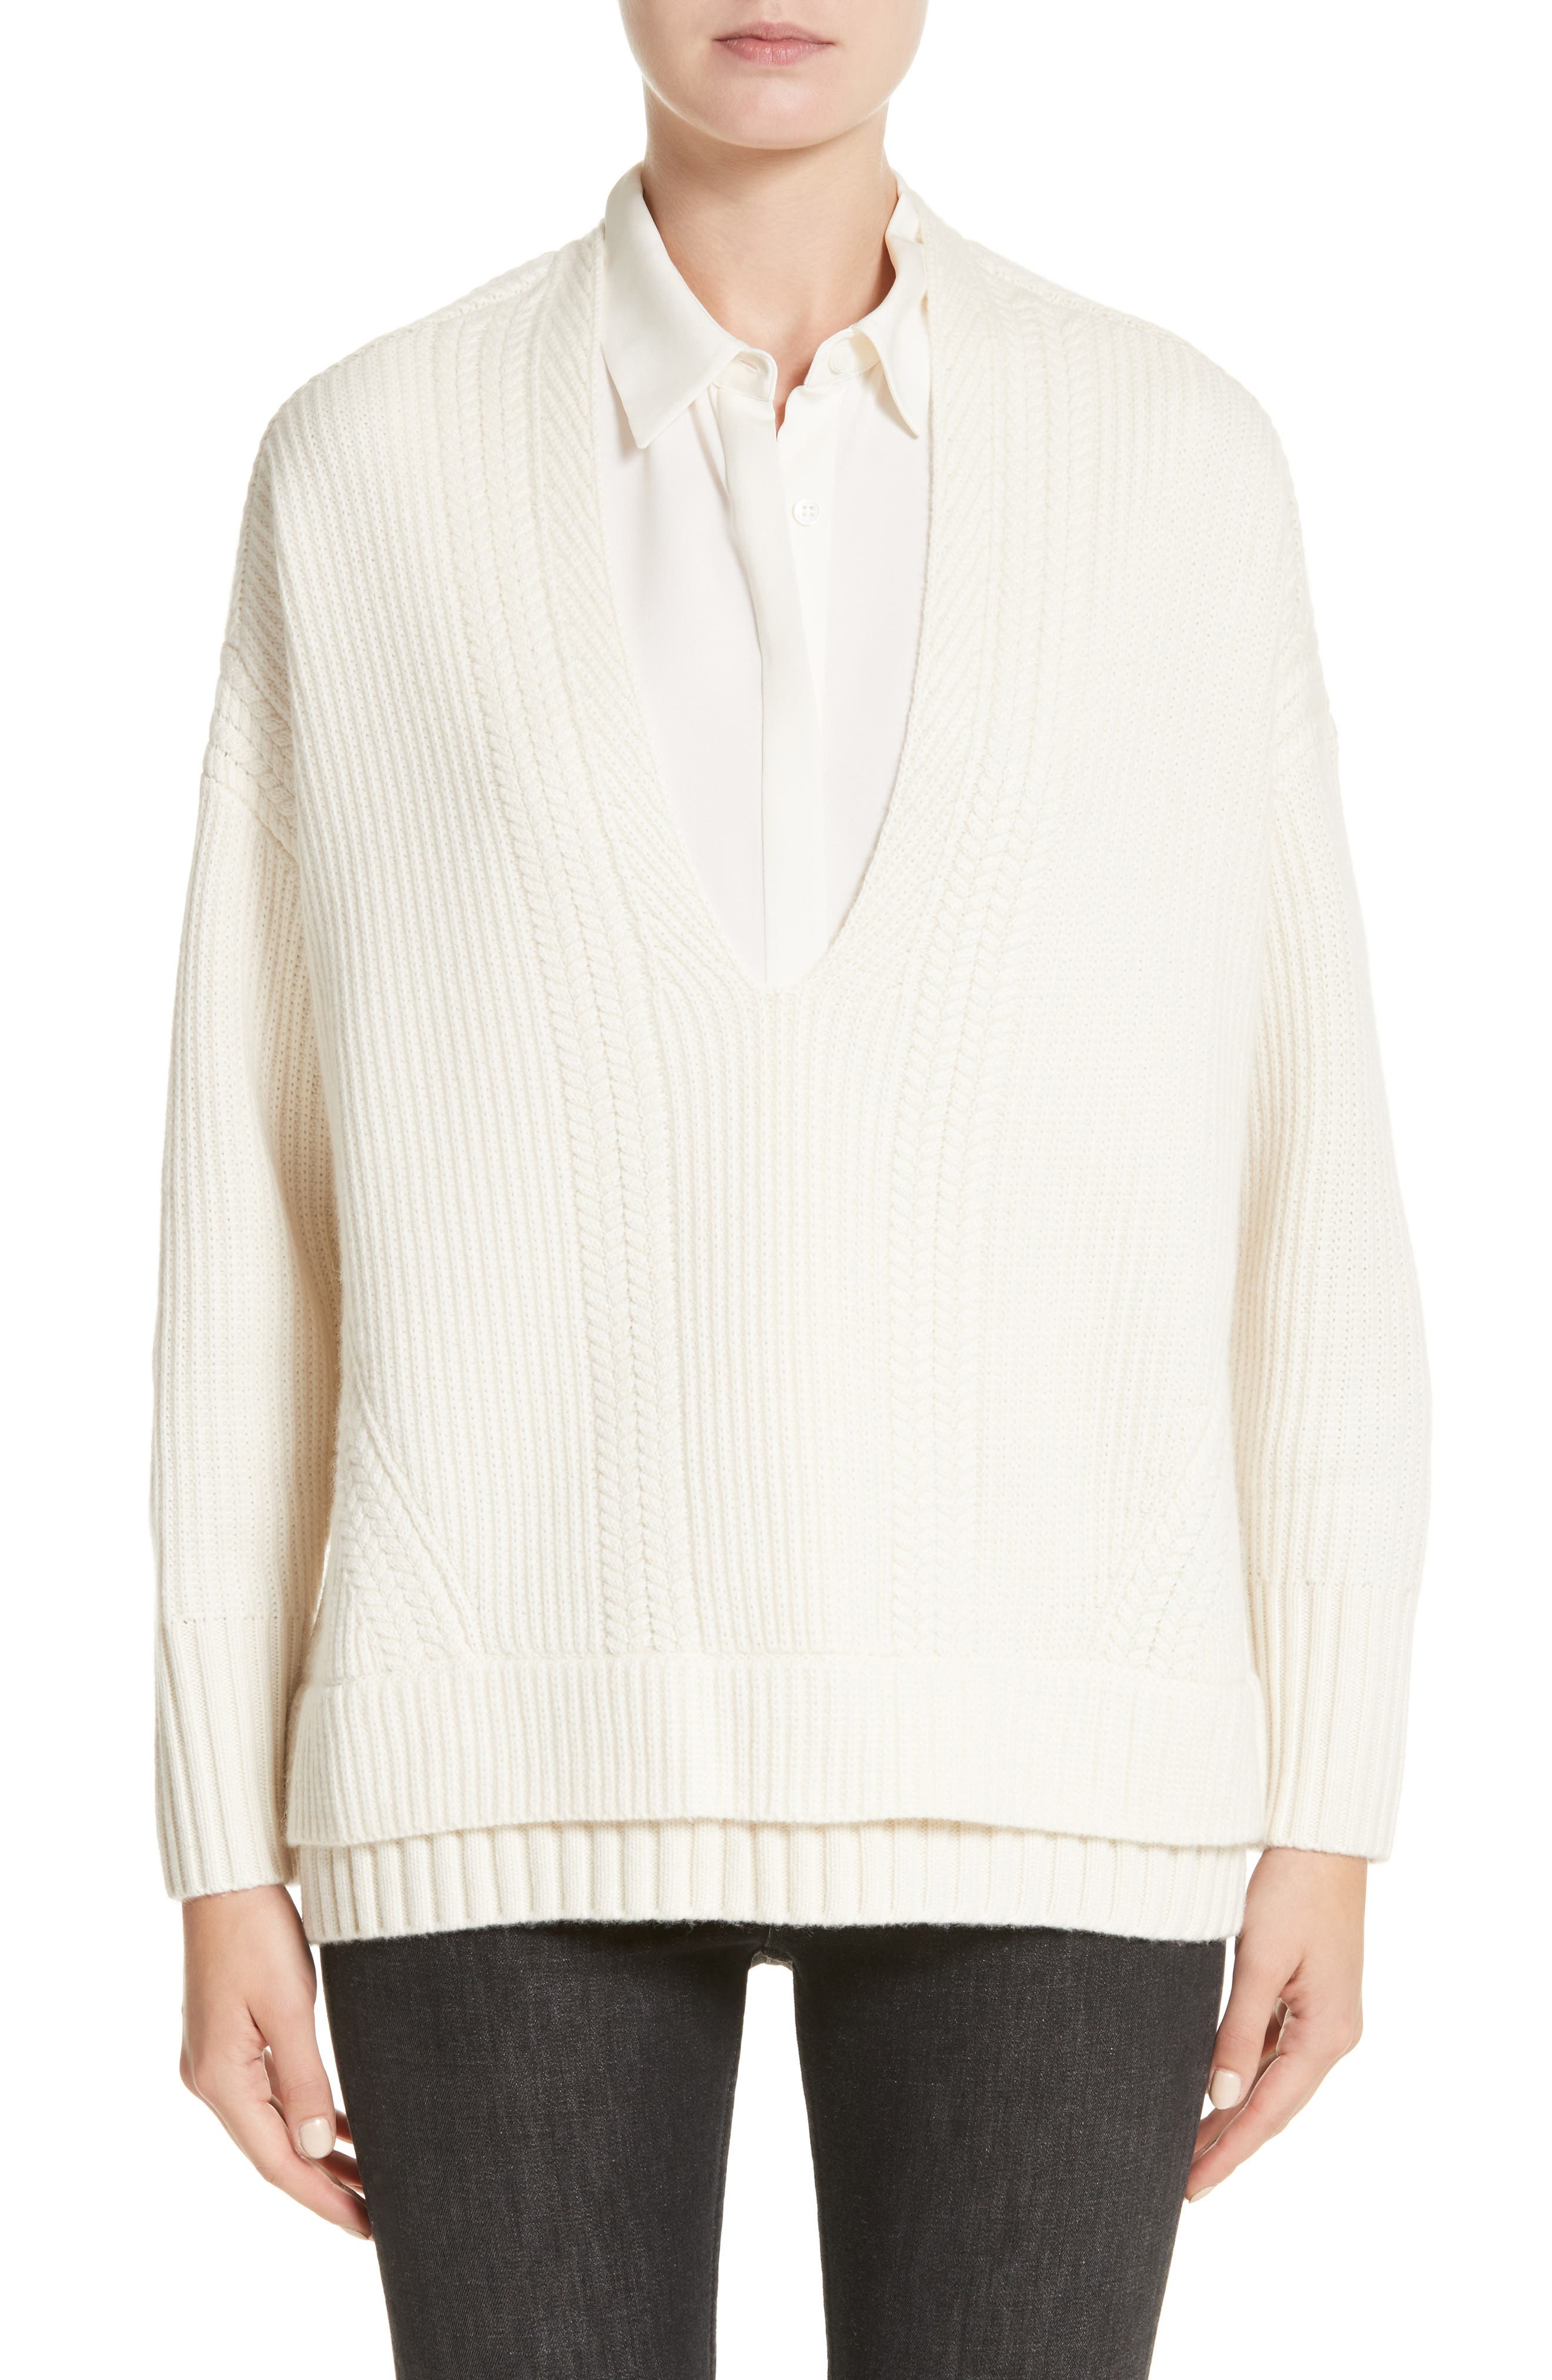 Santerno Wool & Cashmere Cable Knit Sweater,                         Main,                         color, 103